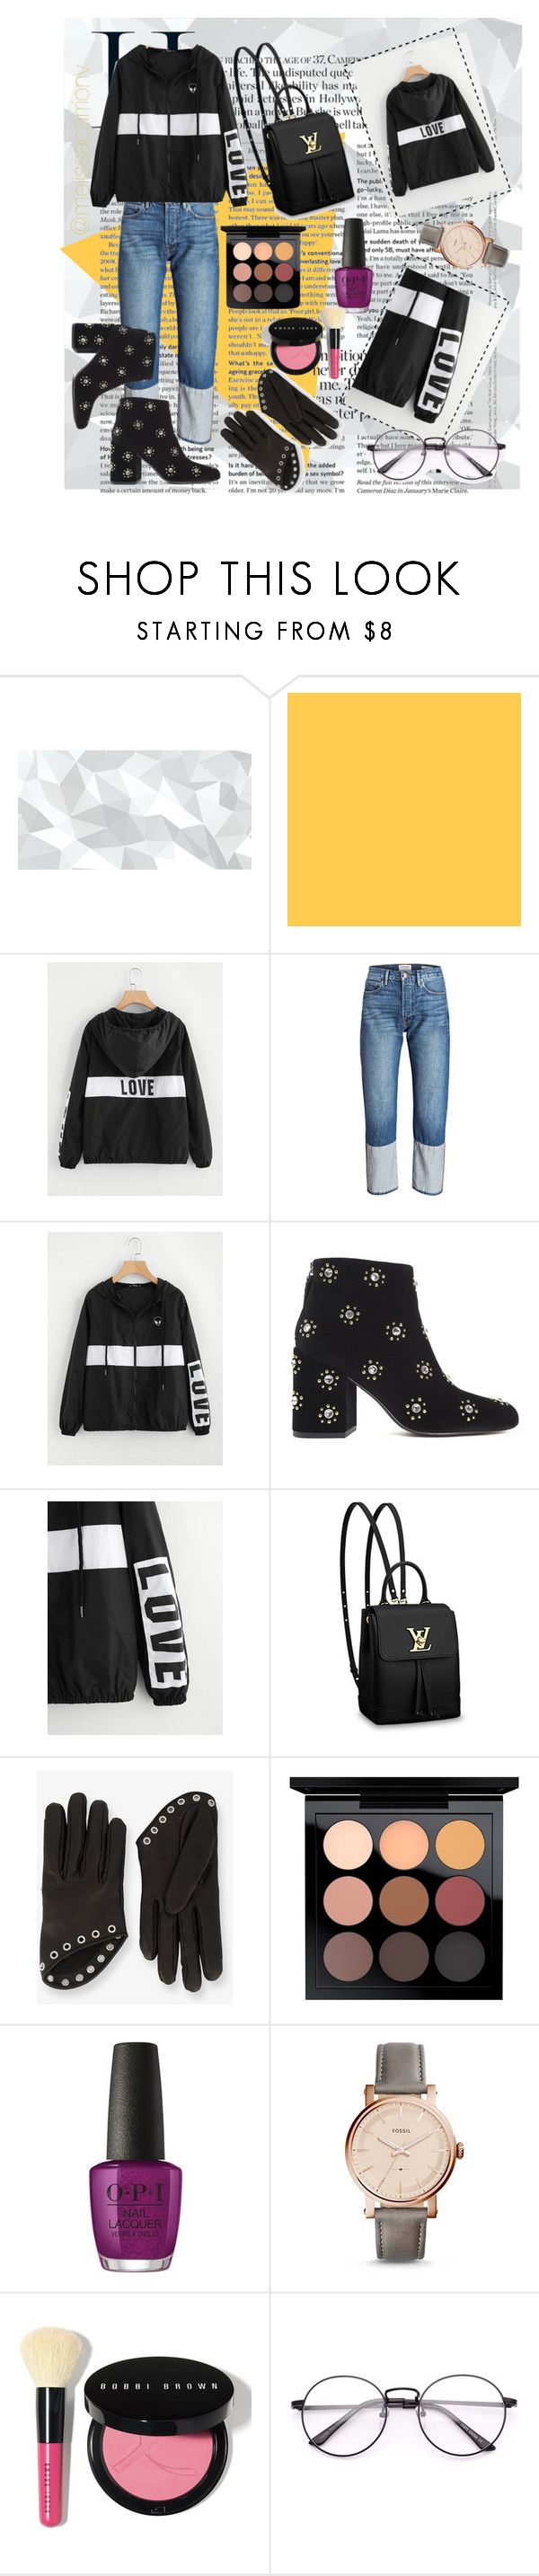 """""""Autumn- Black Sport Outfits"""" by melissa-cv-1 ❤ liked on Polyvore featuring Senso, Louis Vuitton, Alexander McQueen, MAC Cosmetics, OPI, FOSSIL and Bobbi Brown Cosmetics"""